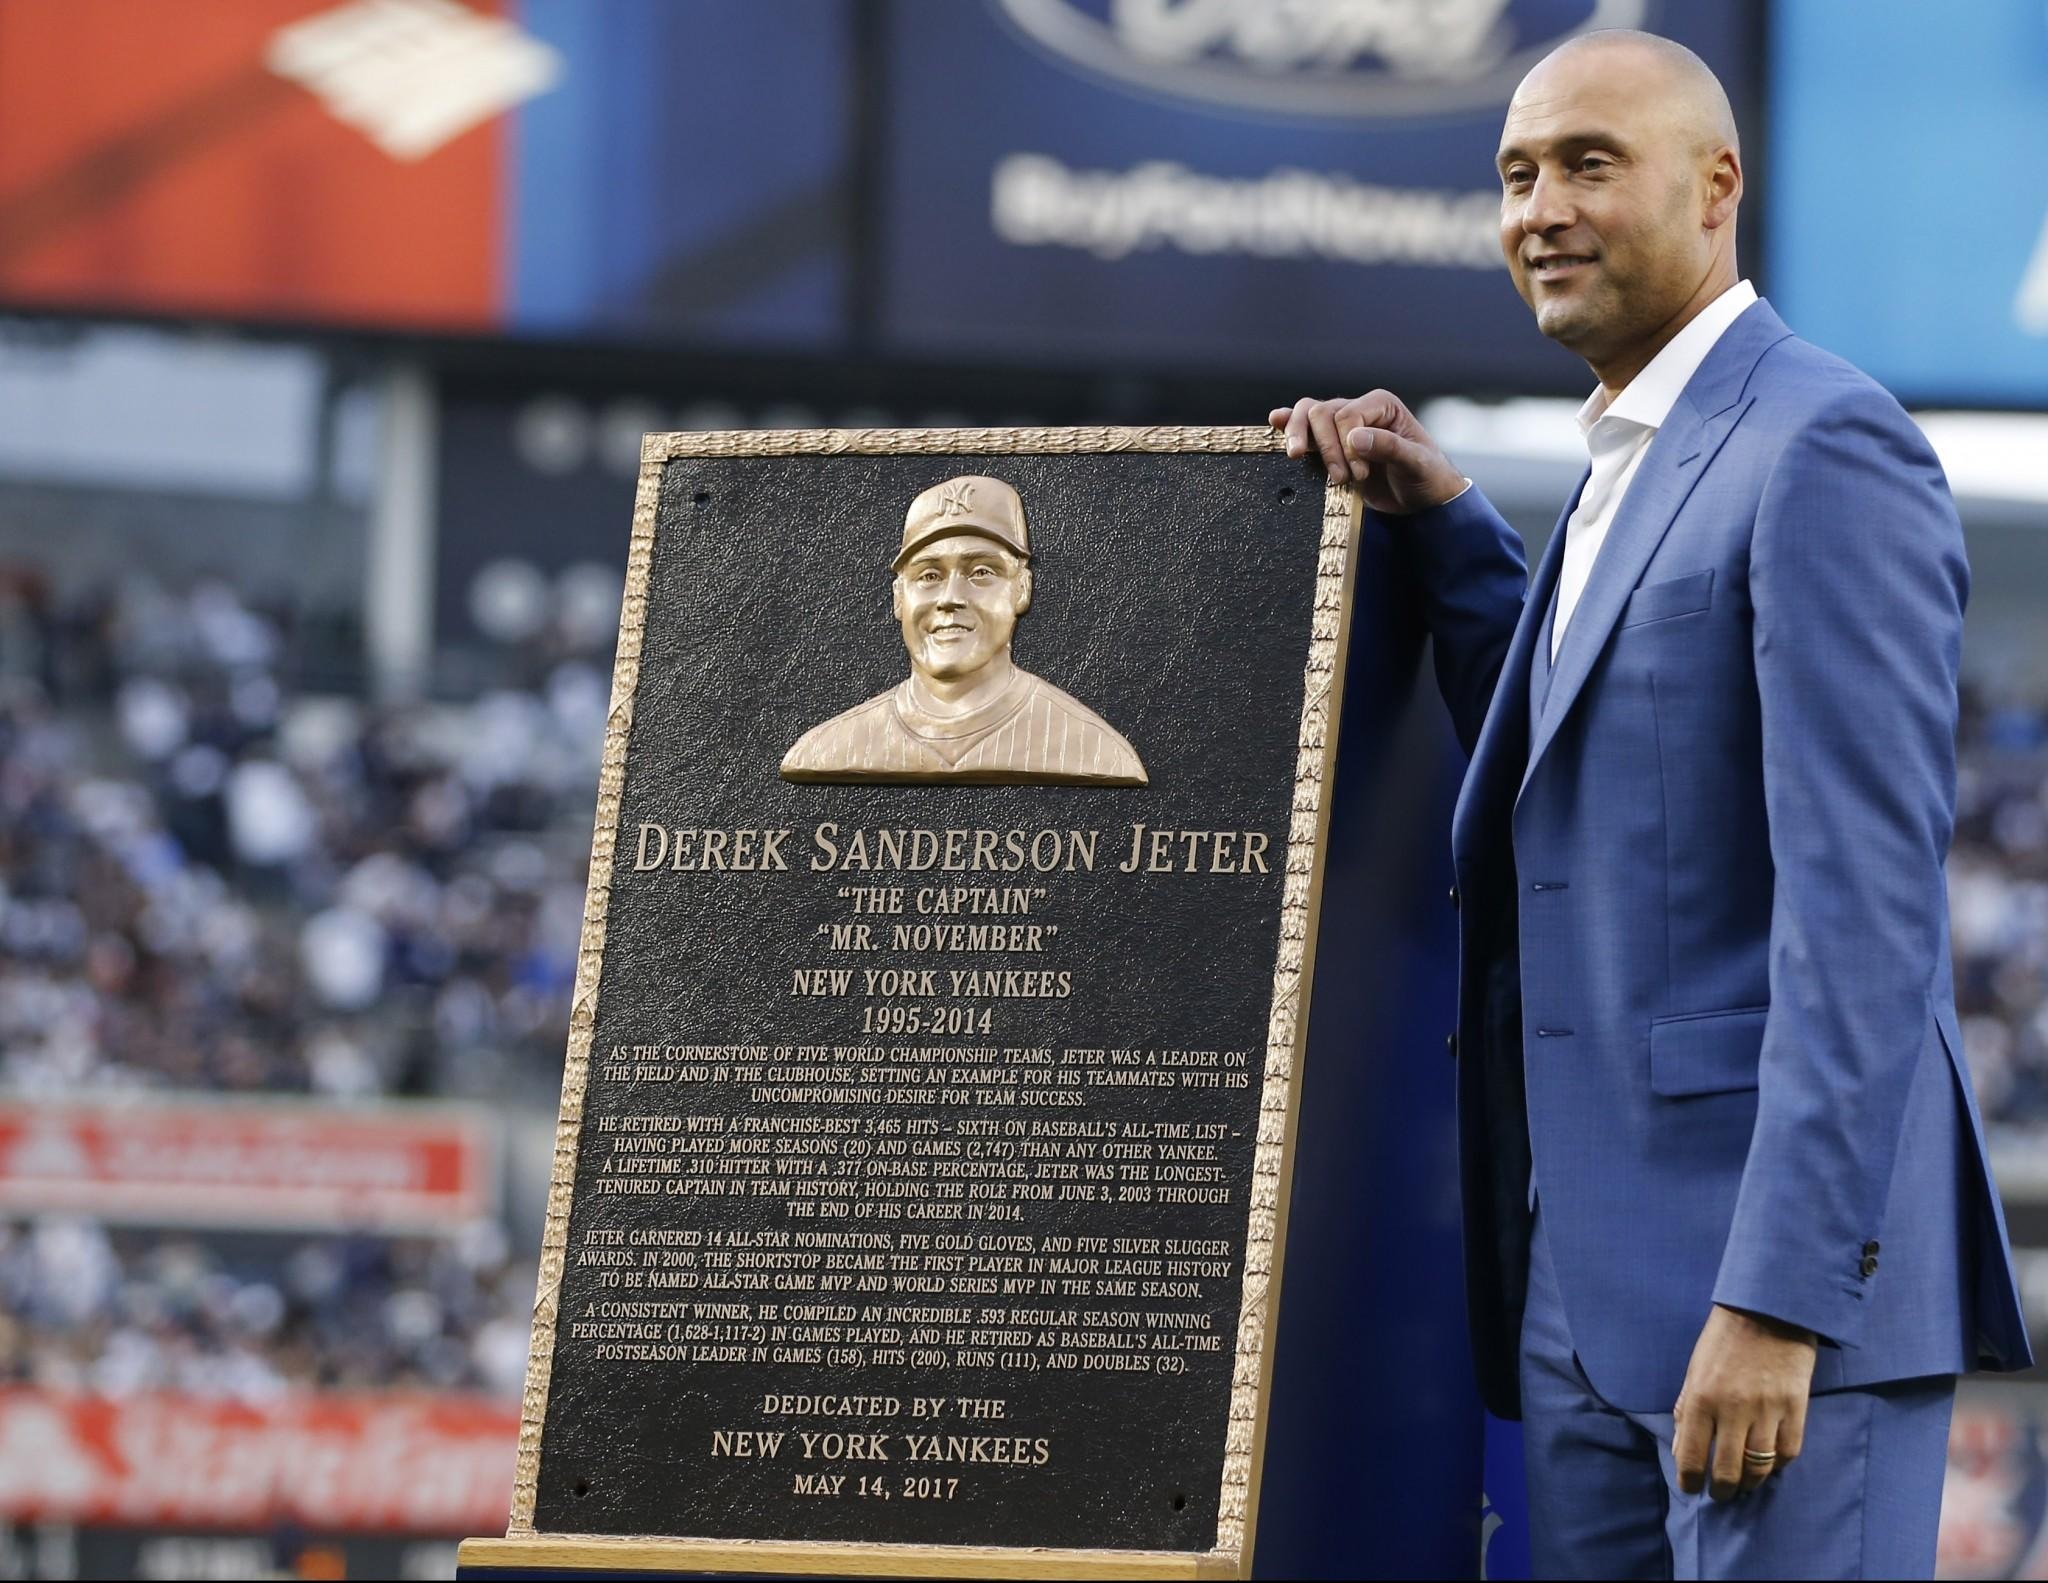 Derek Jeter's number retirement ceremony was peak Yankees